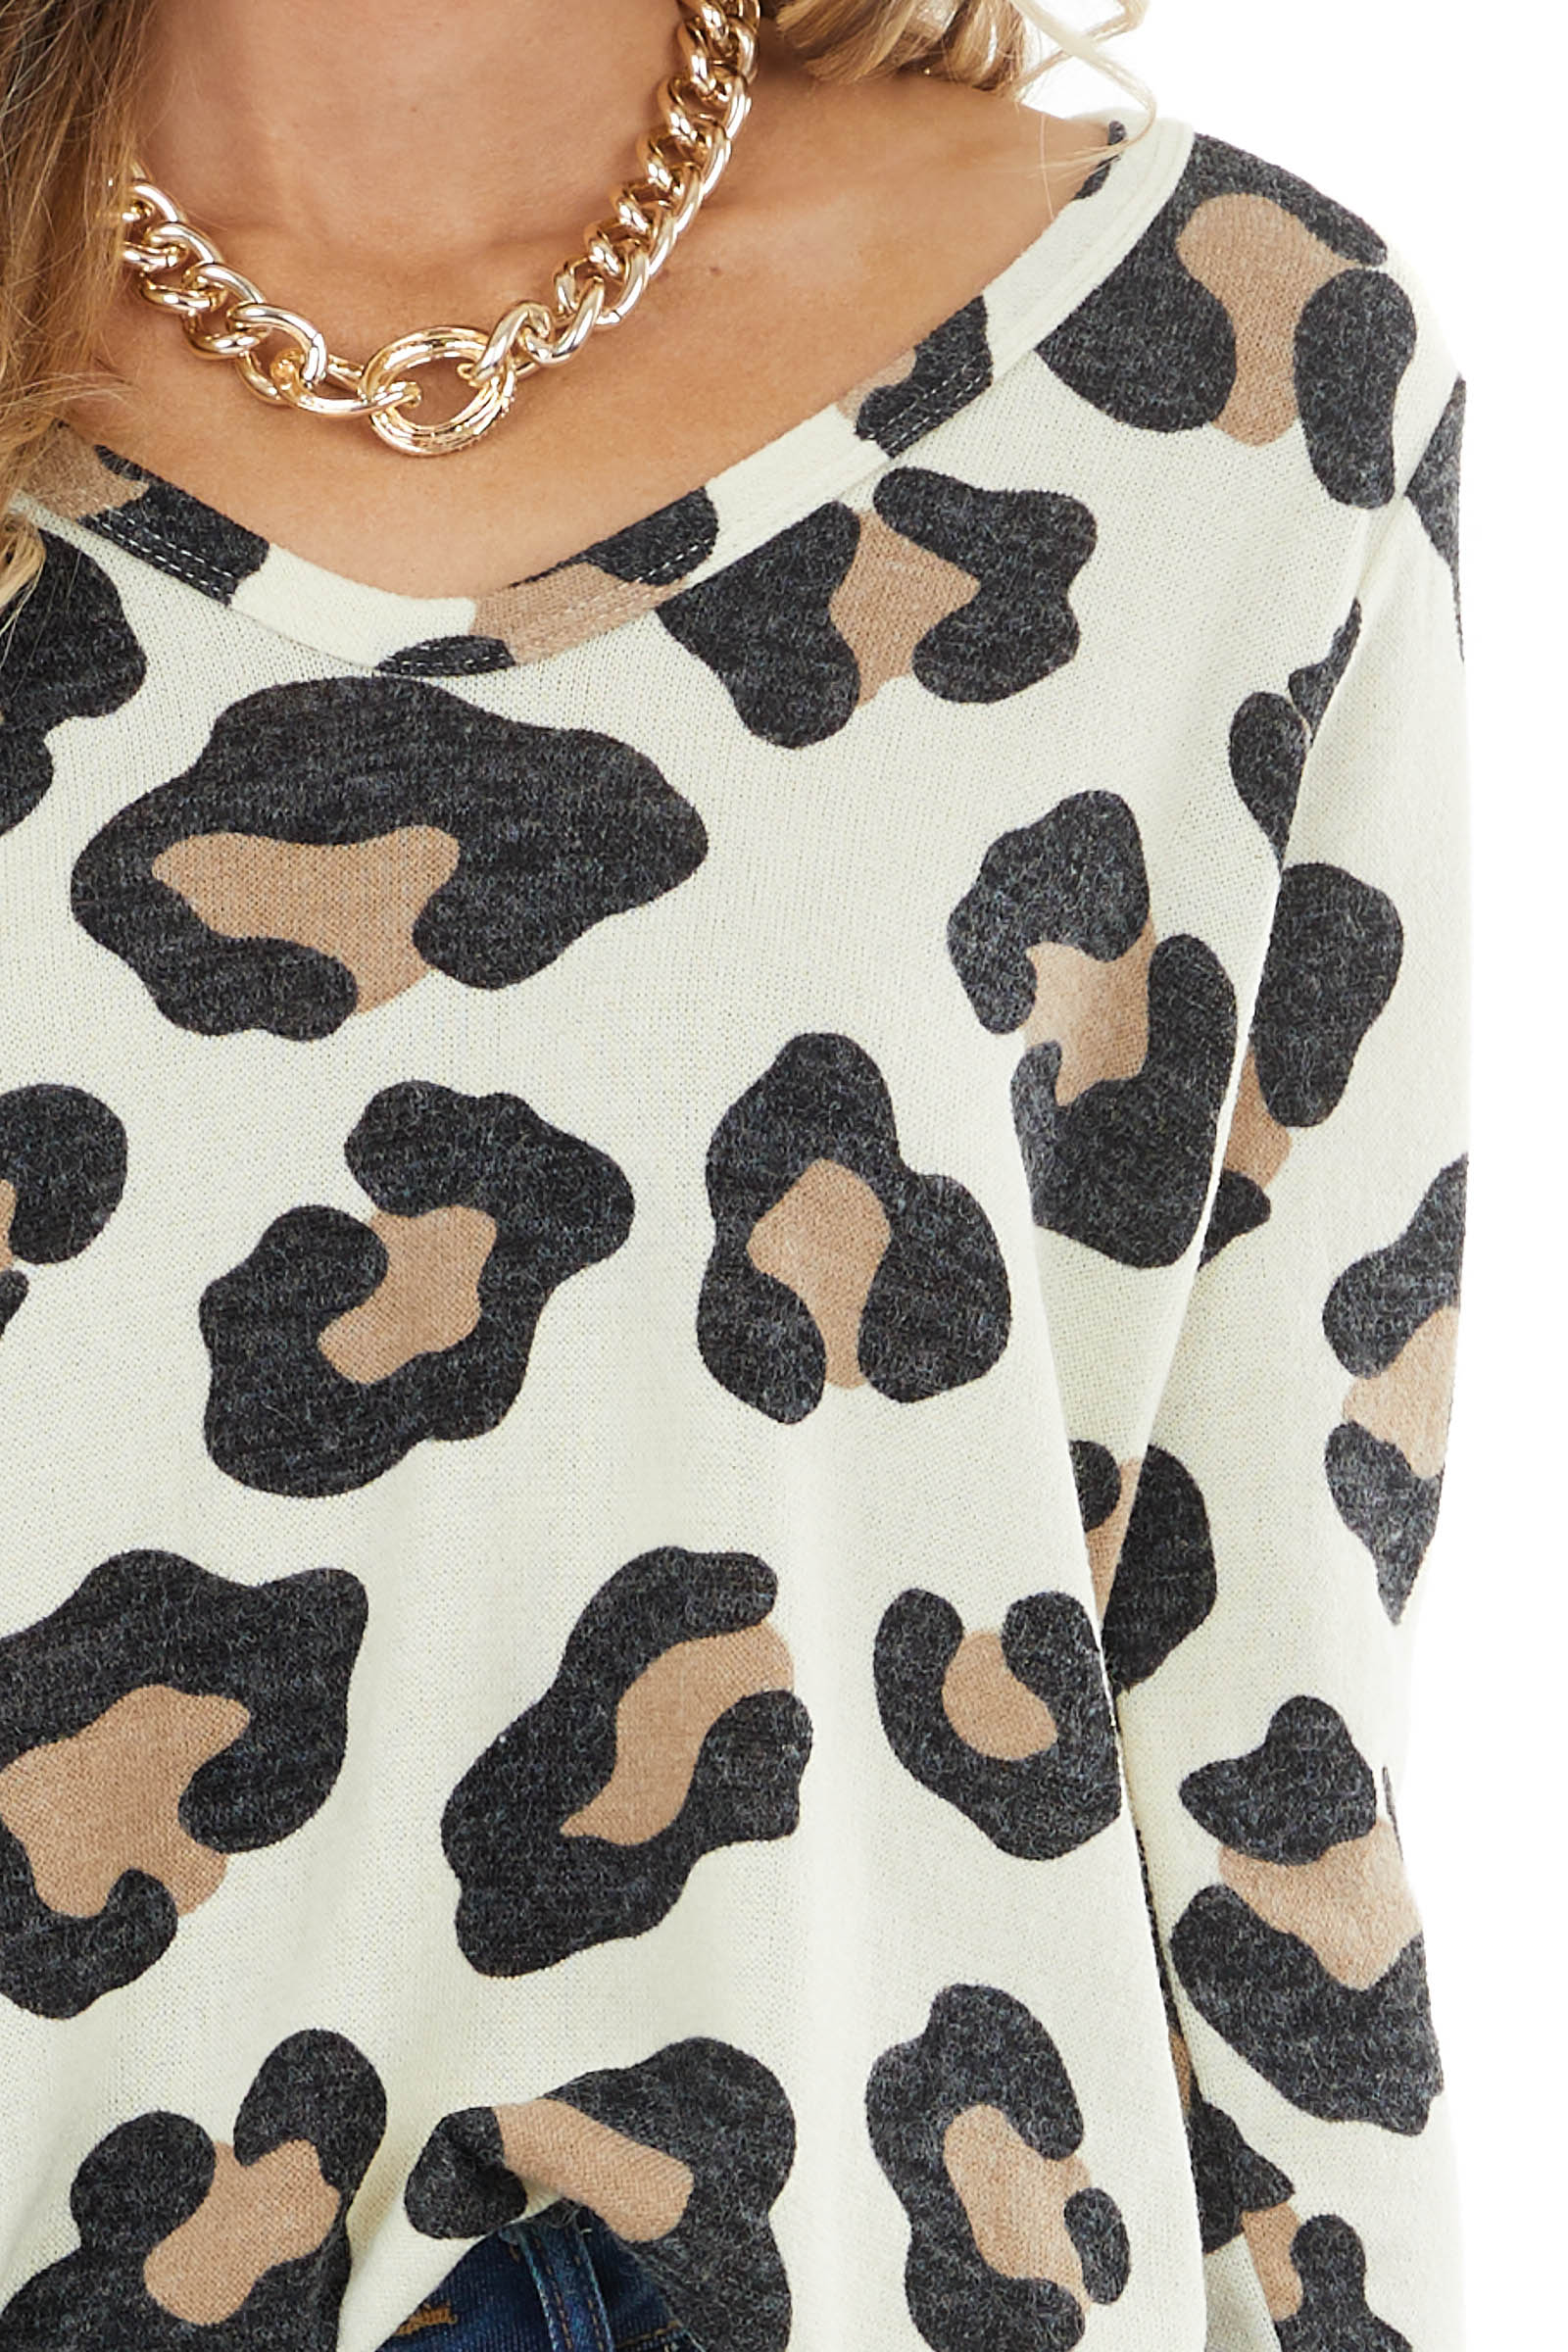 Cream Leopard Print Round Neck Long Sleeve Knit Top